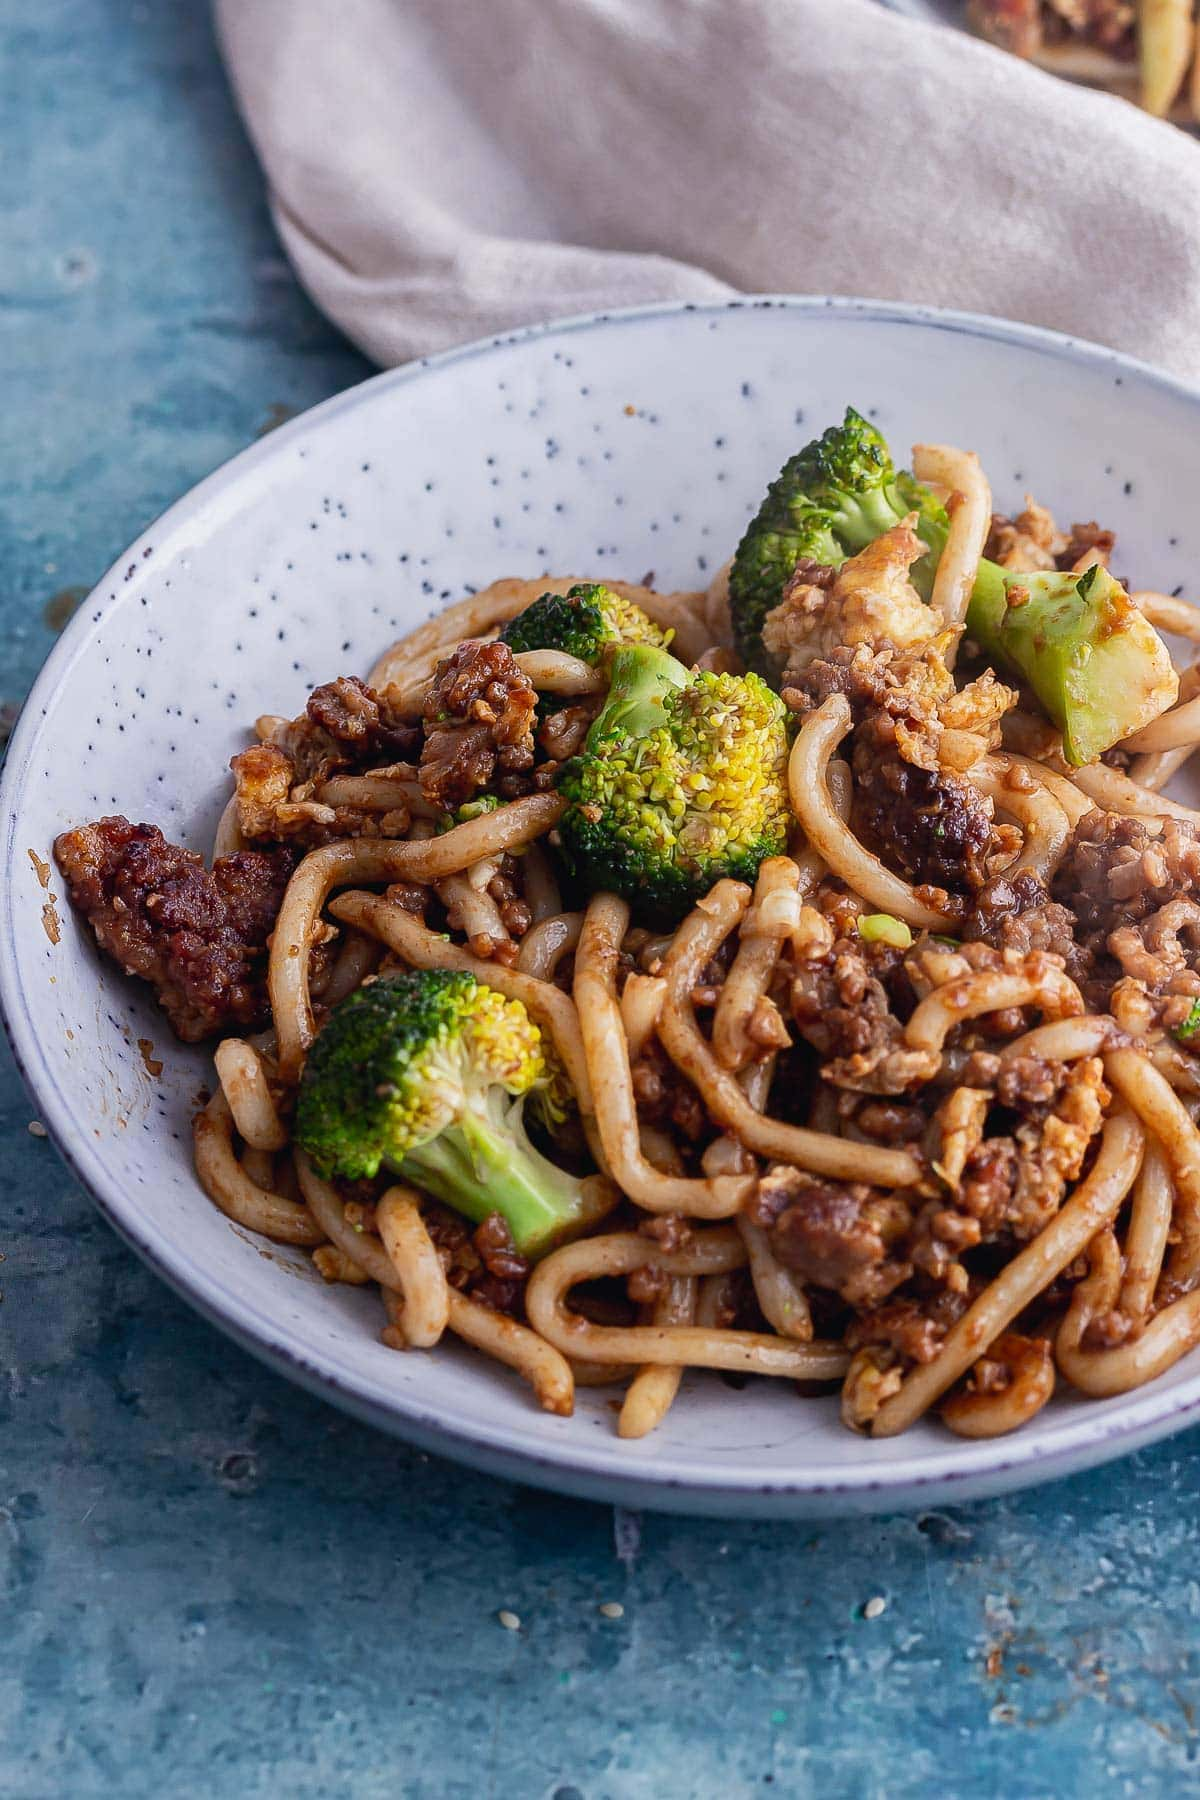 Bowl of udon noodle stir fry with pork and broccoli